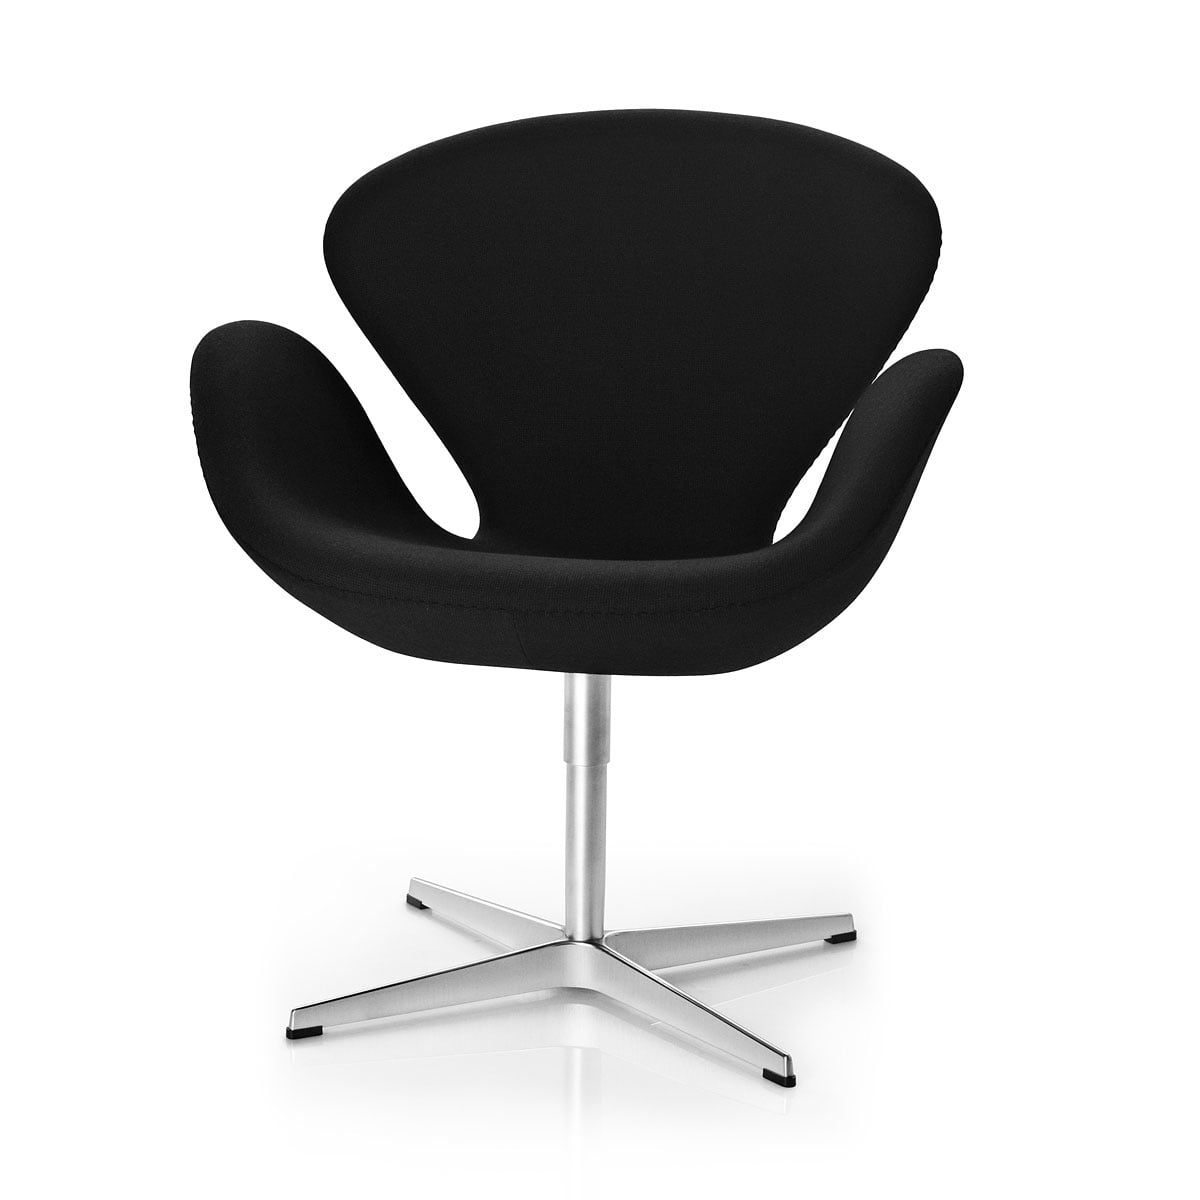 Schwan sessel von fritz hansen connox for Sessel 40 euro